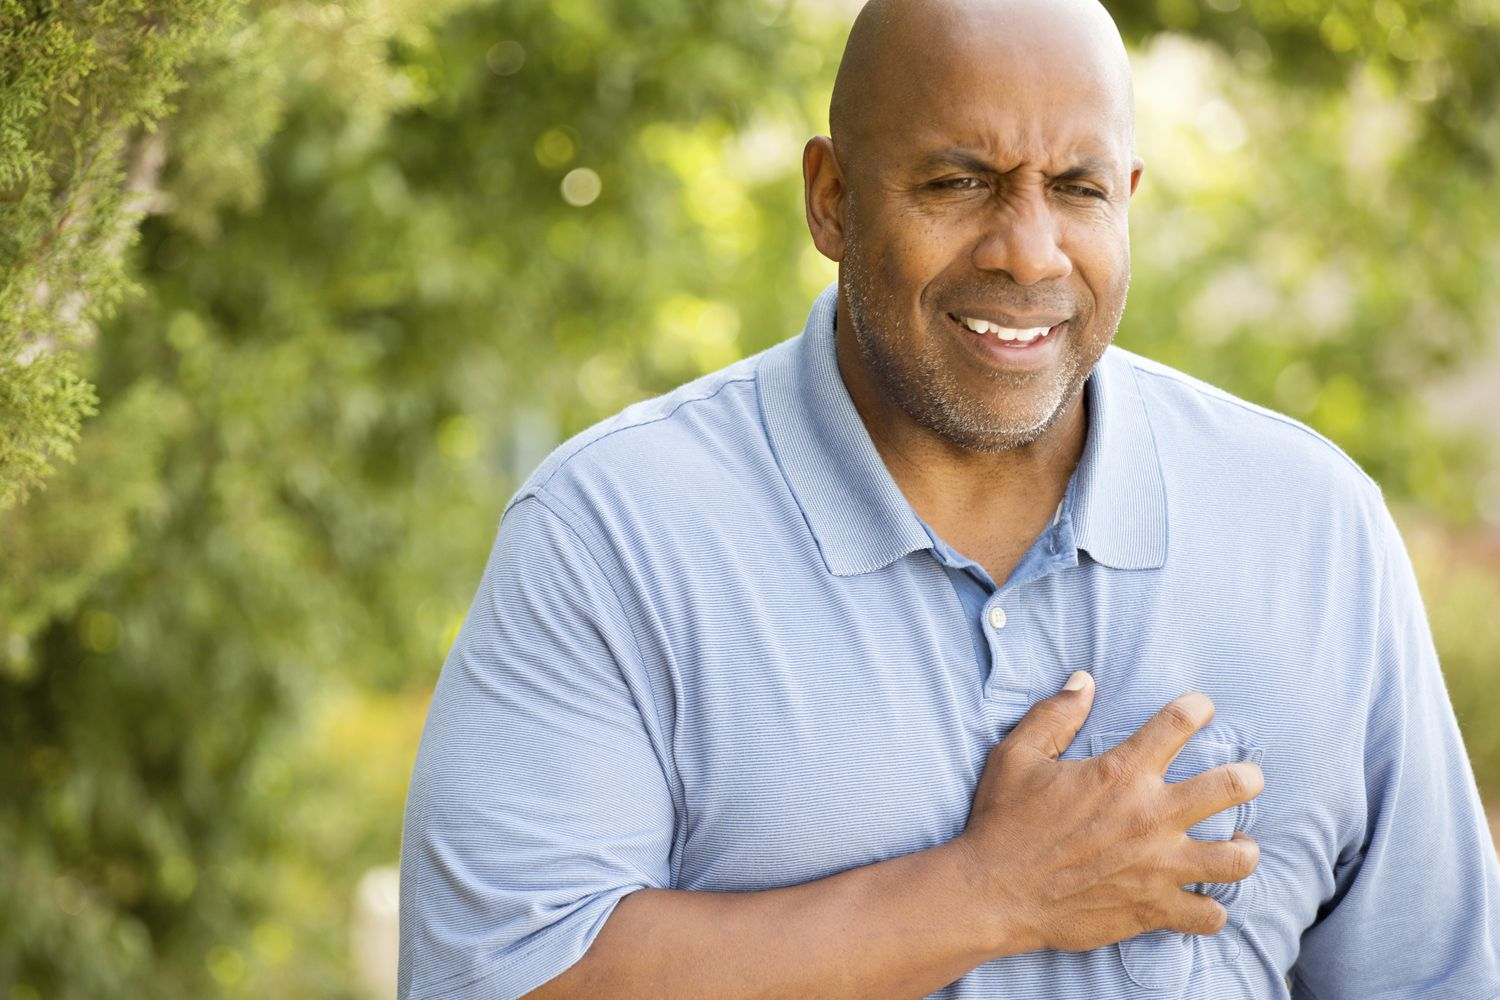 An Overview of Heart Attack